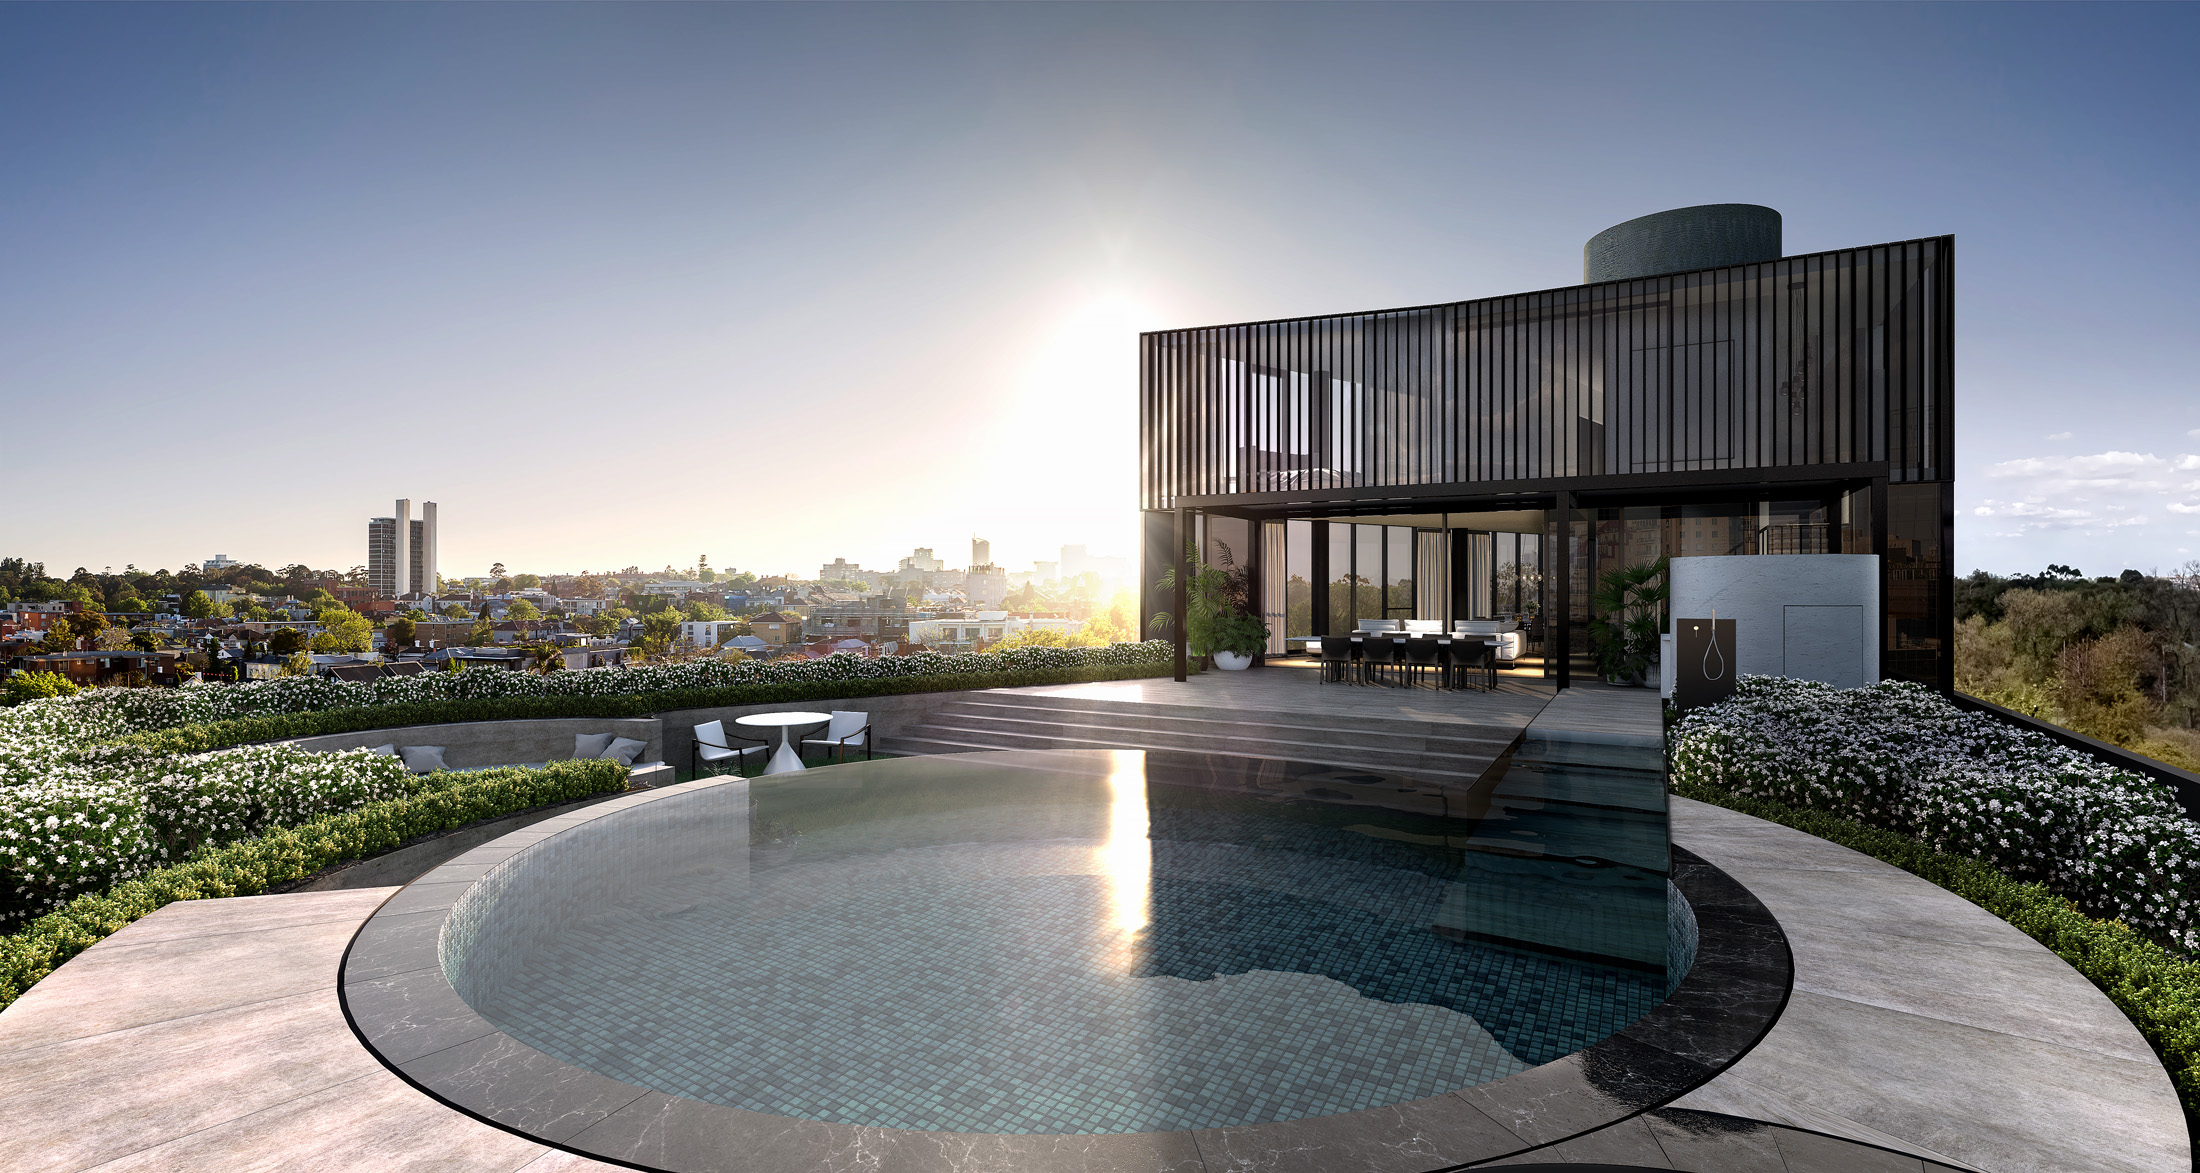 The-Muse-apartment-living-image-photography-3d-renders-FKD-studio-rooftop